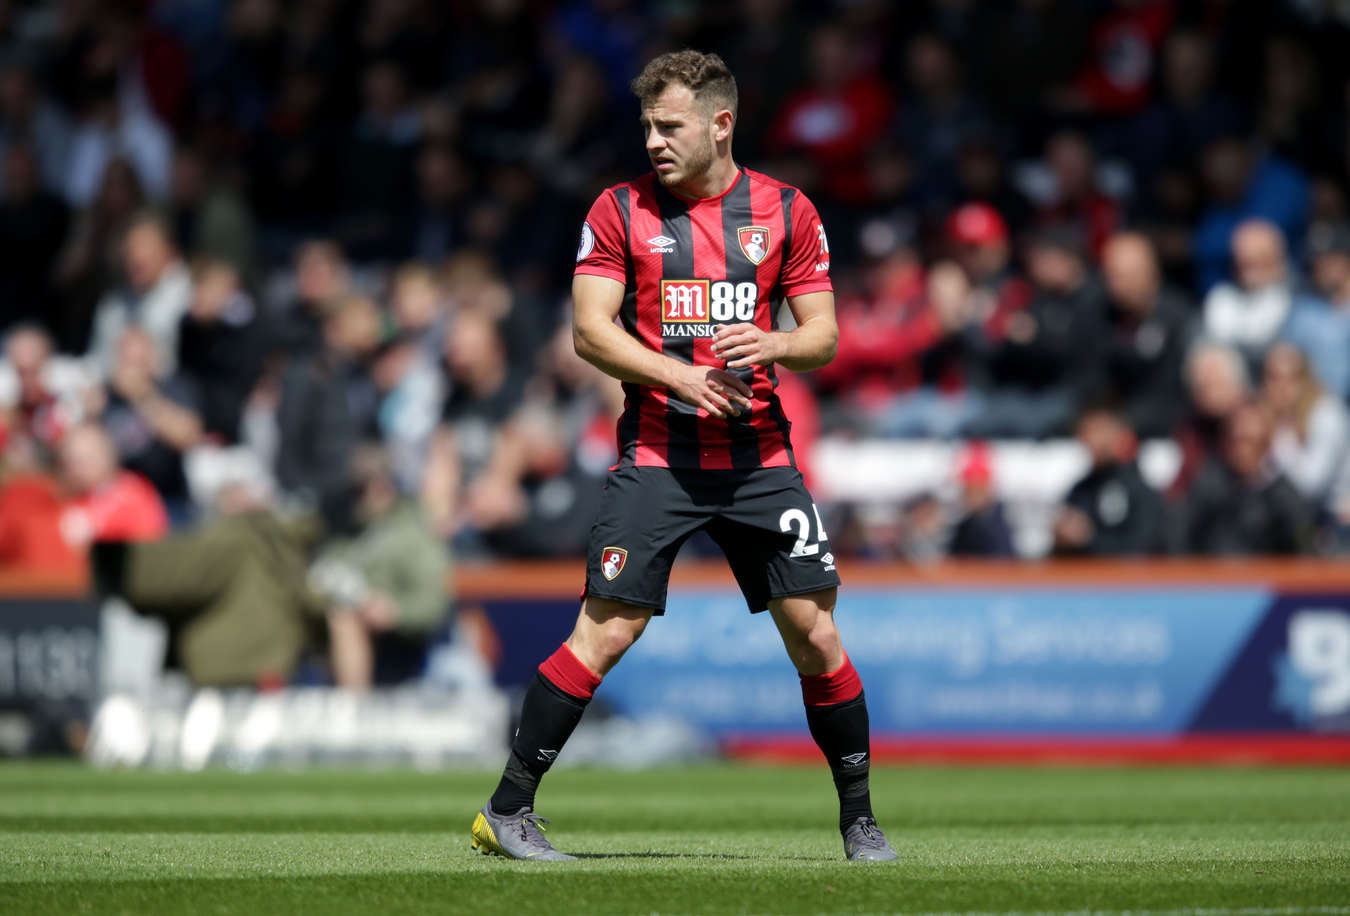 Arsenal keen on signing Bournemouth star Ryan Fraser on free transfer   Read more: https://metro.co.uk/2020/03/25/arsenal-keen-signing-bournemouth-star-ryan-fraser-free-transfer-12456924/?ito=cbshare  Twitter: https://twitter.com/MetroUK | Facebook: https://www.facebook.com/MetroUK/ - Bóng Đá